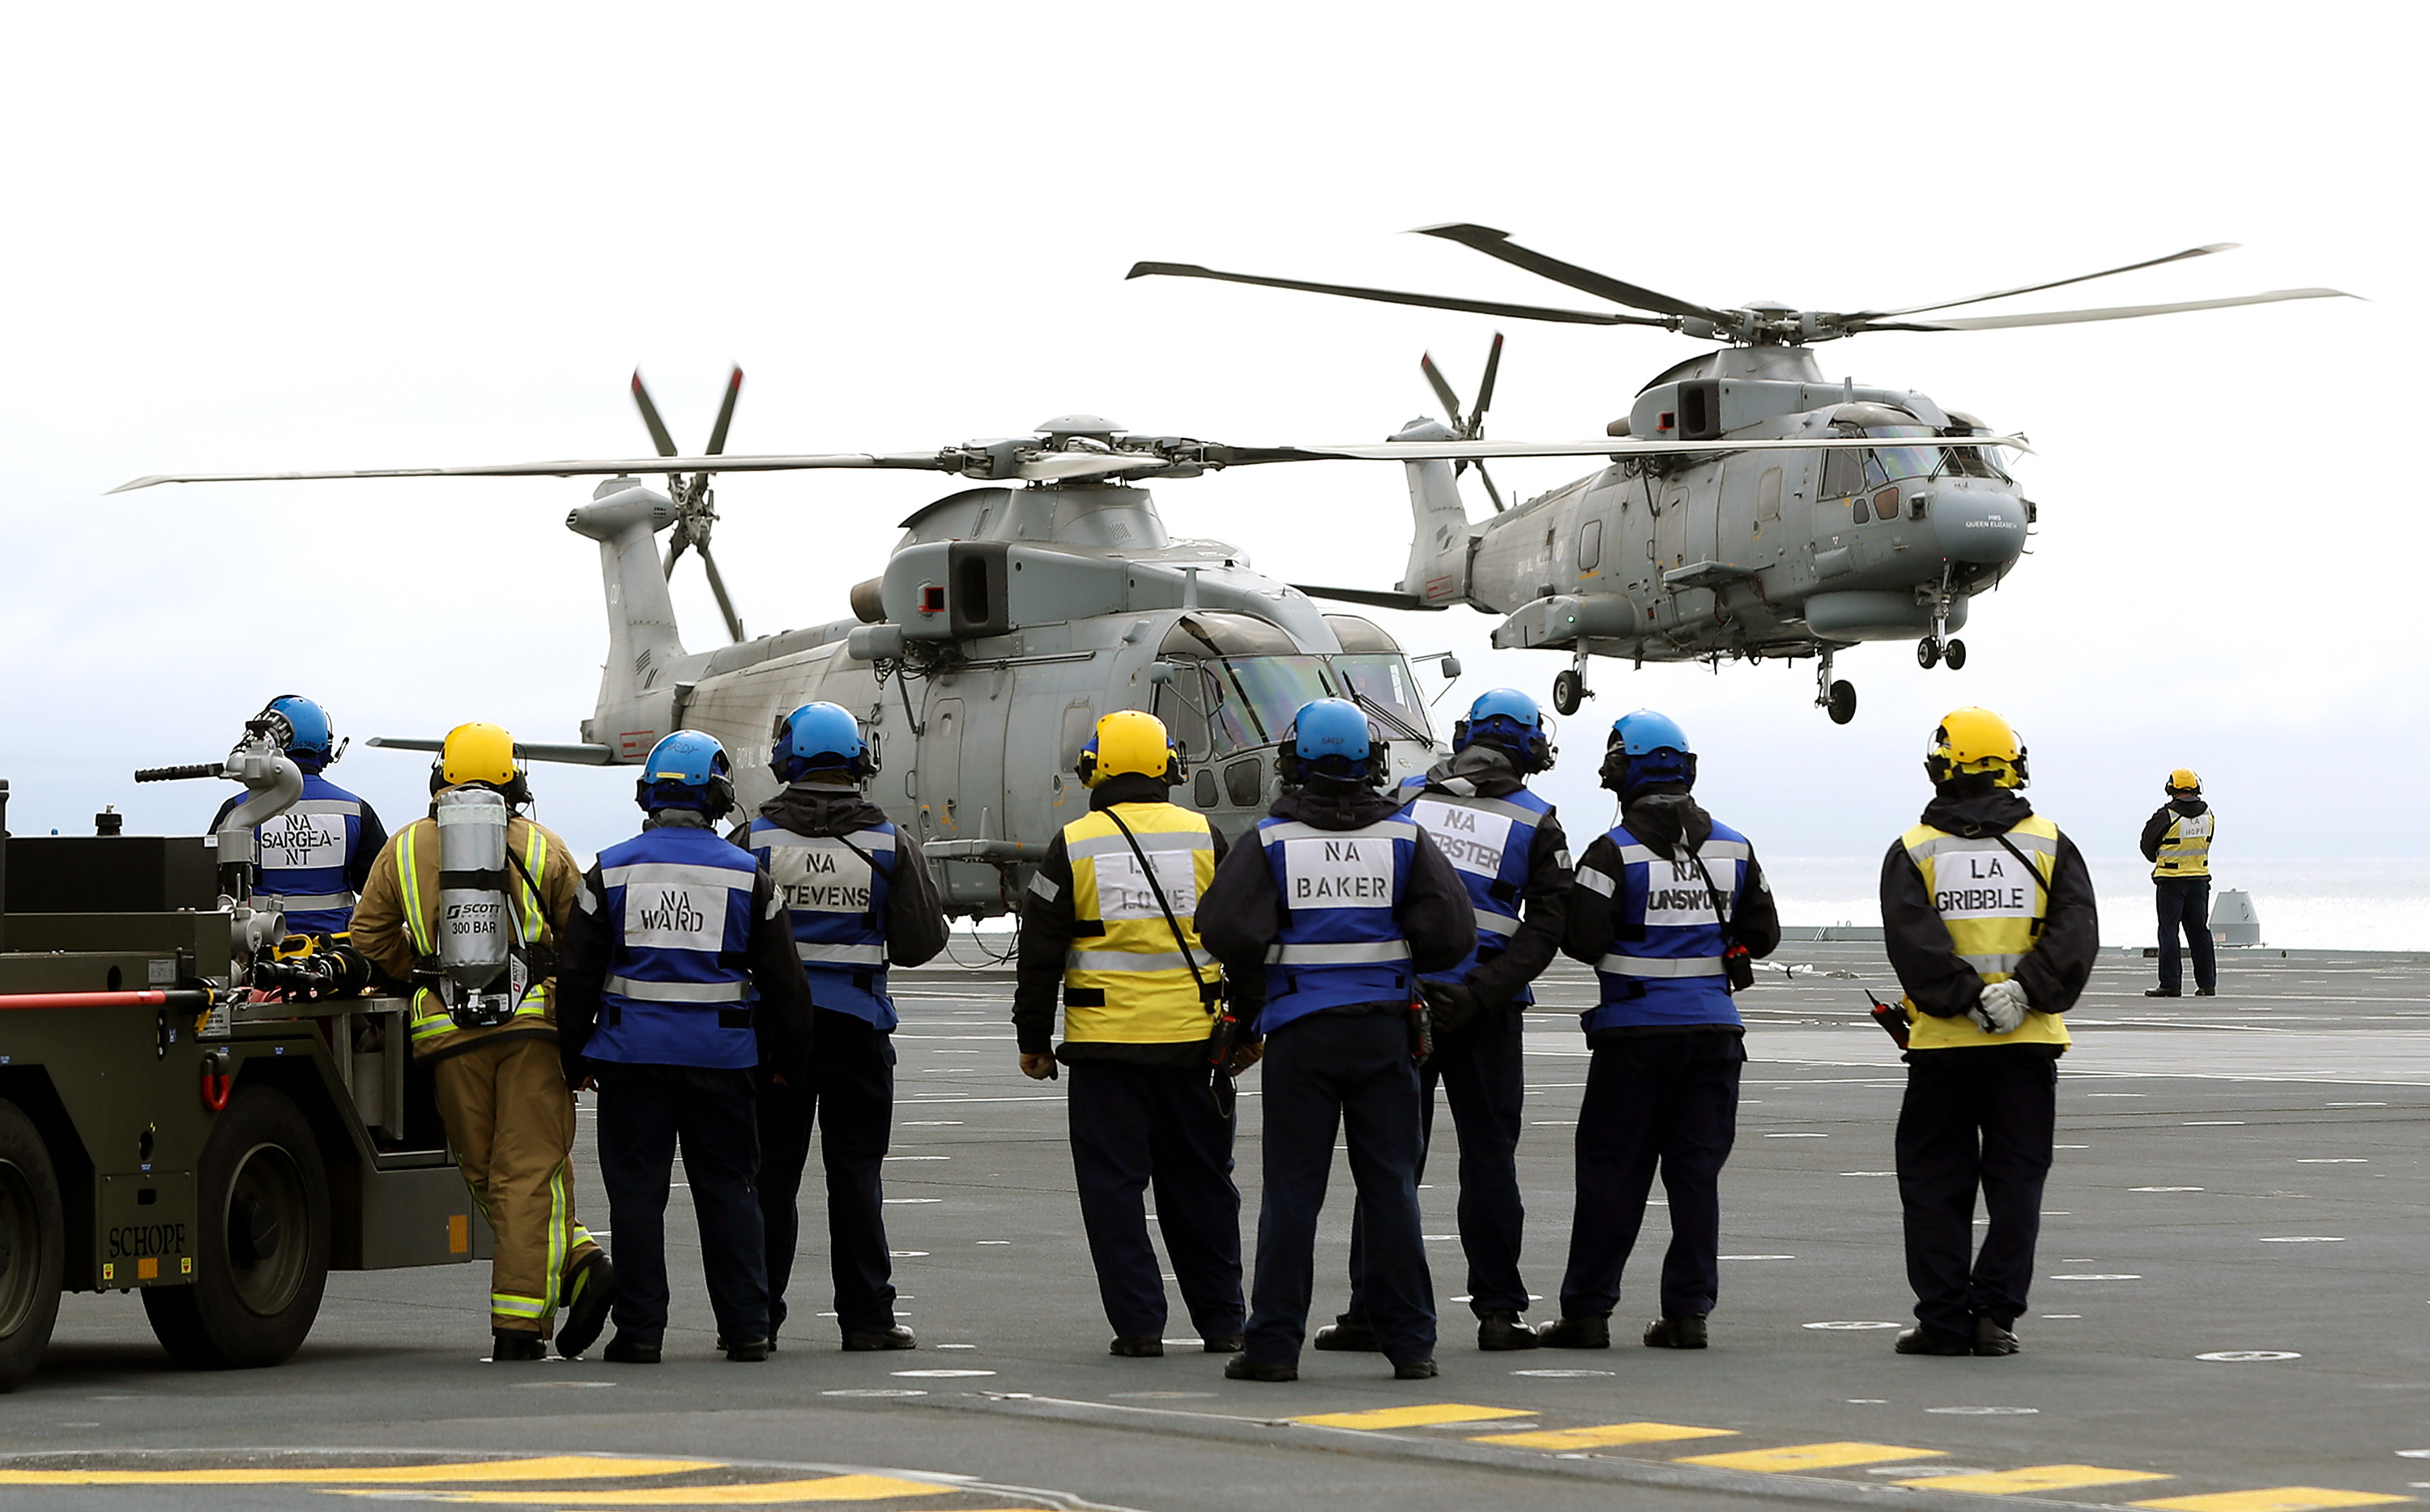 The Defence Secretary landed by Merlin helicopter on the deck of the new aircraft carrier HMS Queen Elizabeth, which is currently on sea trials off the coast of Scotland. He met with members of the crew and thanked them for their contribution to UK defence. While addressing the Ship's Company, Sir Michael announced the Britain's second aircraft carrier, HMS Prince of Wales, will be officially named at a ceremony in Rosyth on 8th September 2017.  He arrived in a Merlin helicopter from 820 Naval Air Squadron.  He was briefed on the progress of the ships contractor sea trials and he then addressed the ships company on the flight deck.